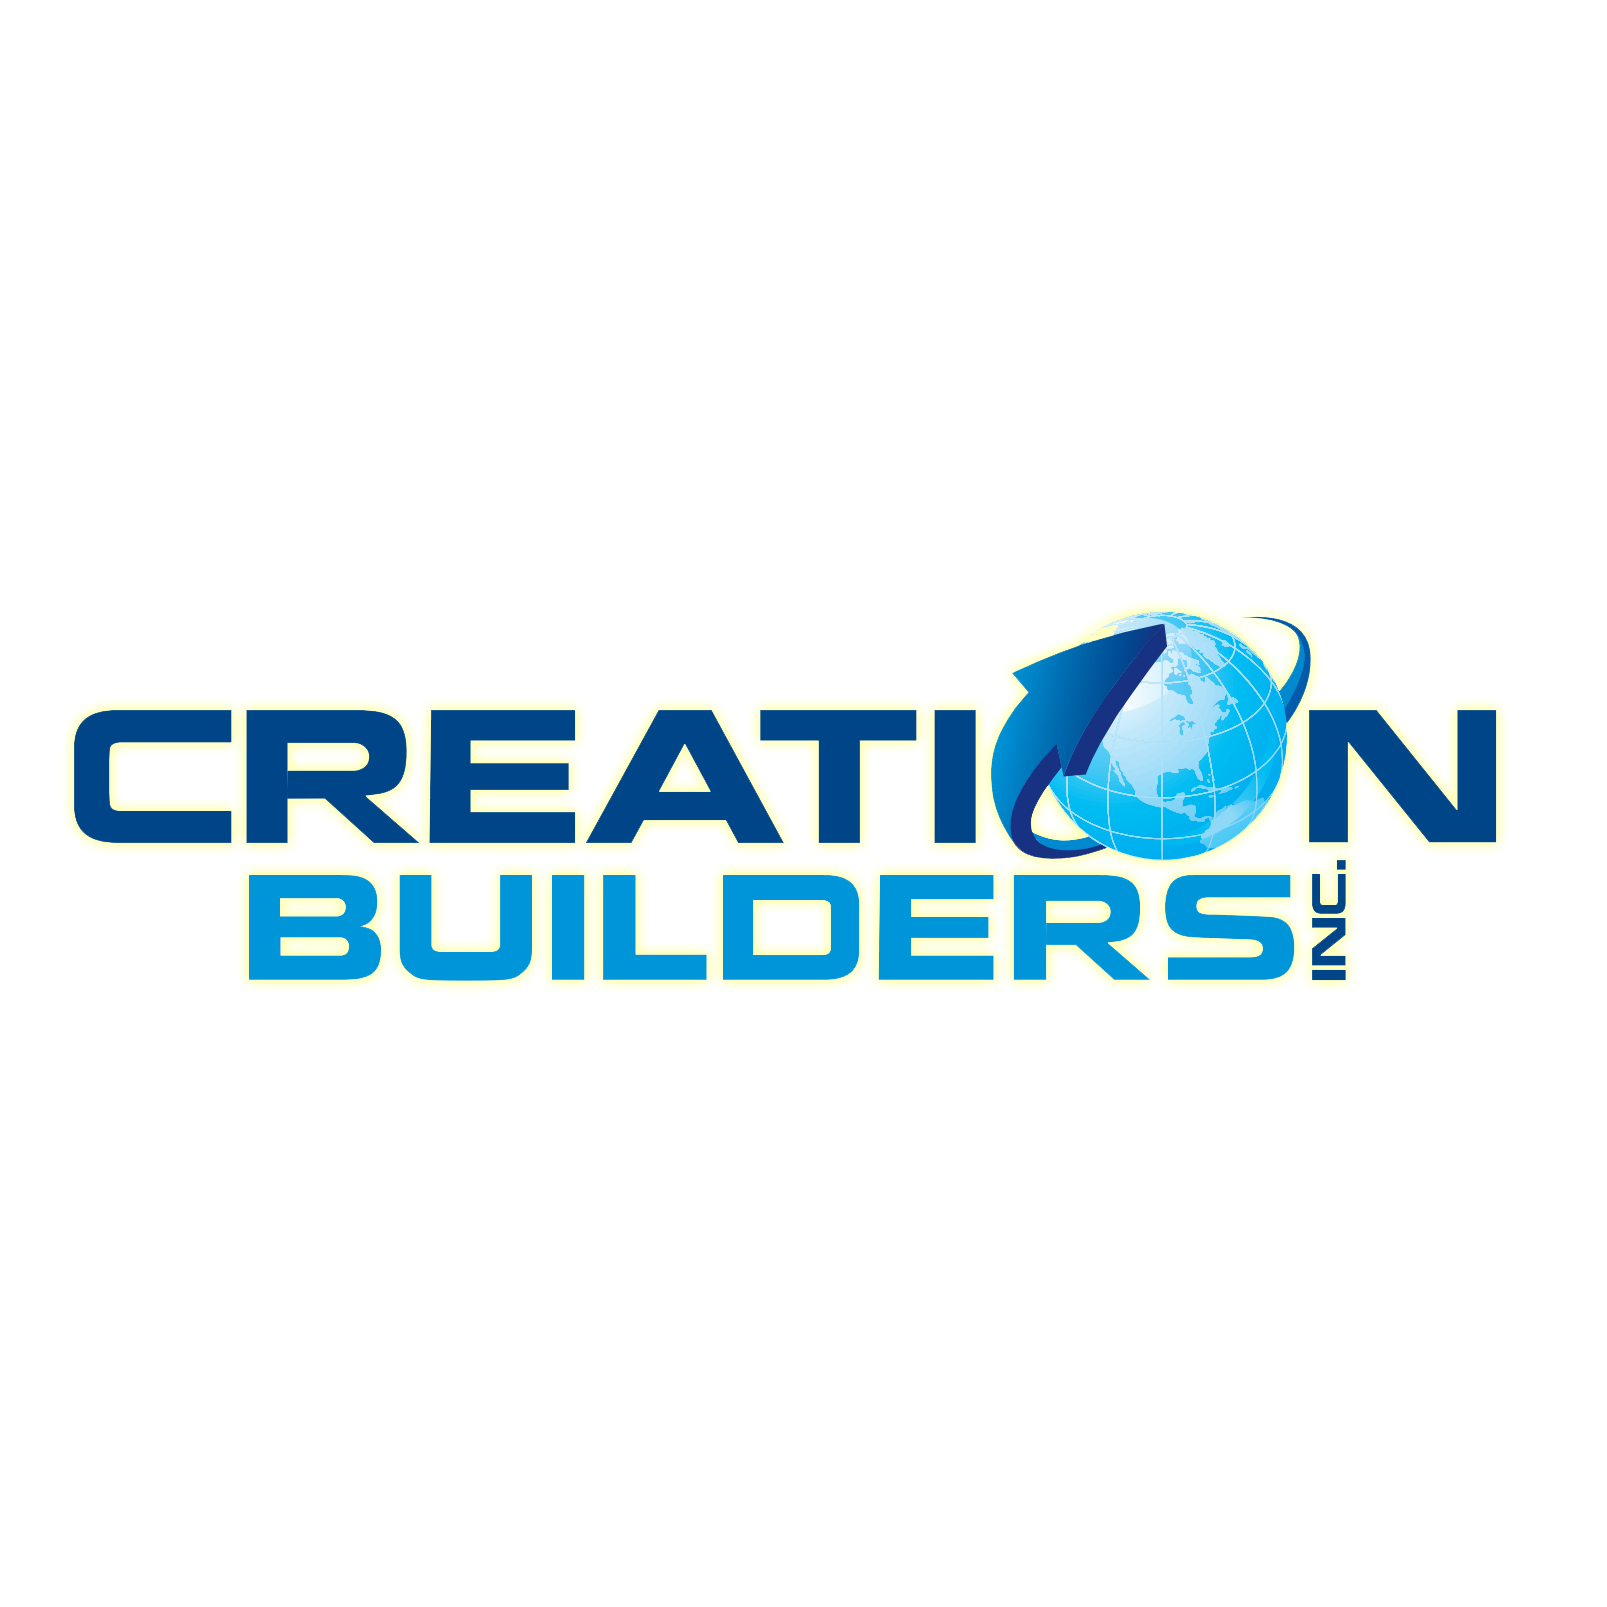 image of the Creation Builders Inc.